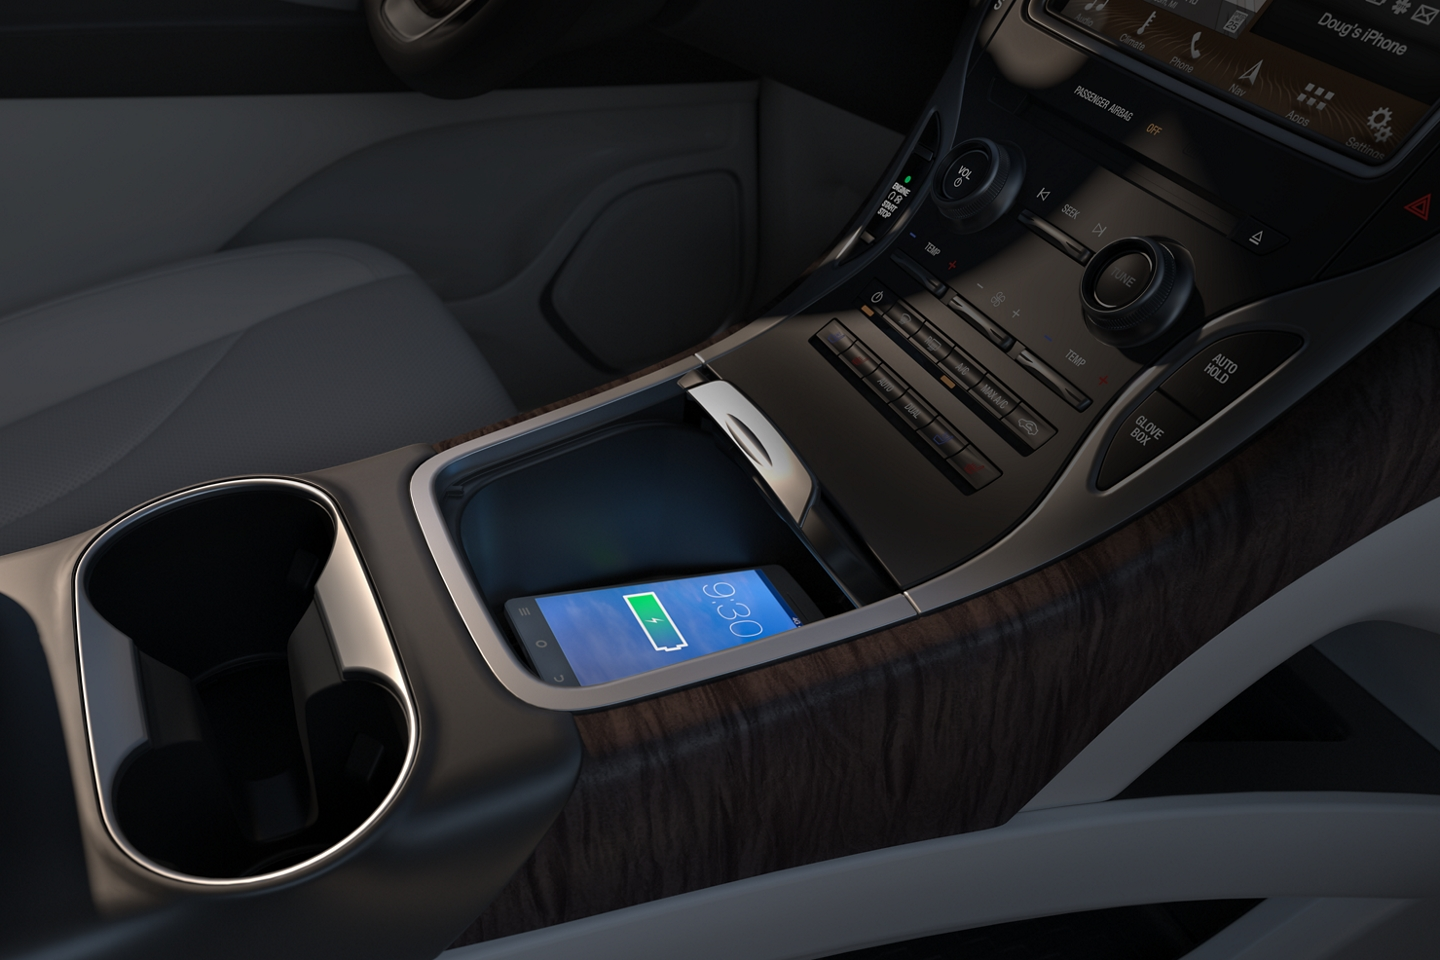 New 2020 Lincoln Nautilus Technology Features